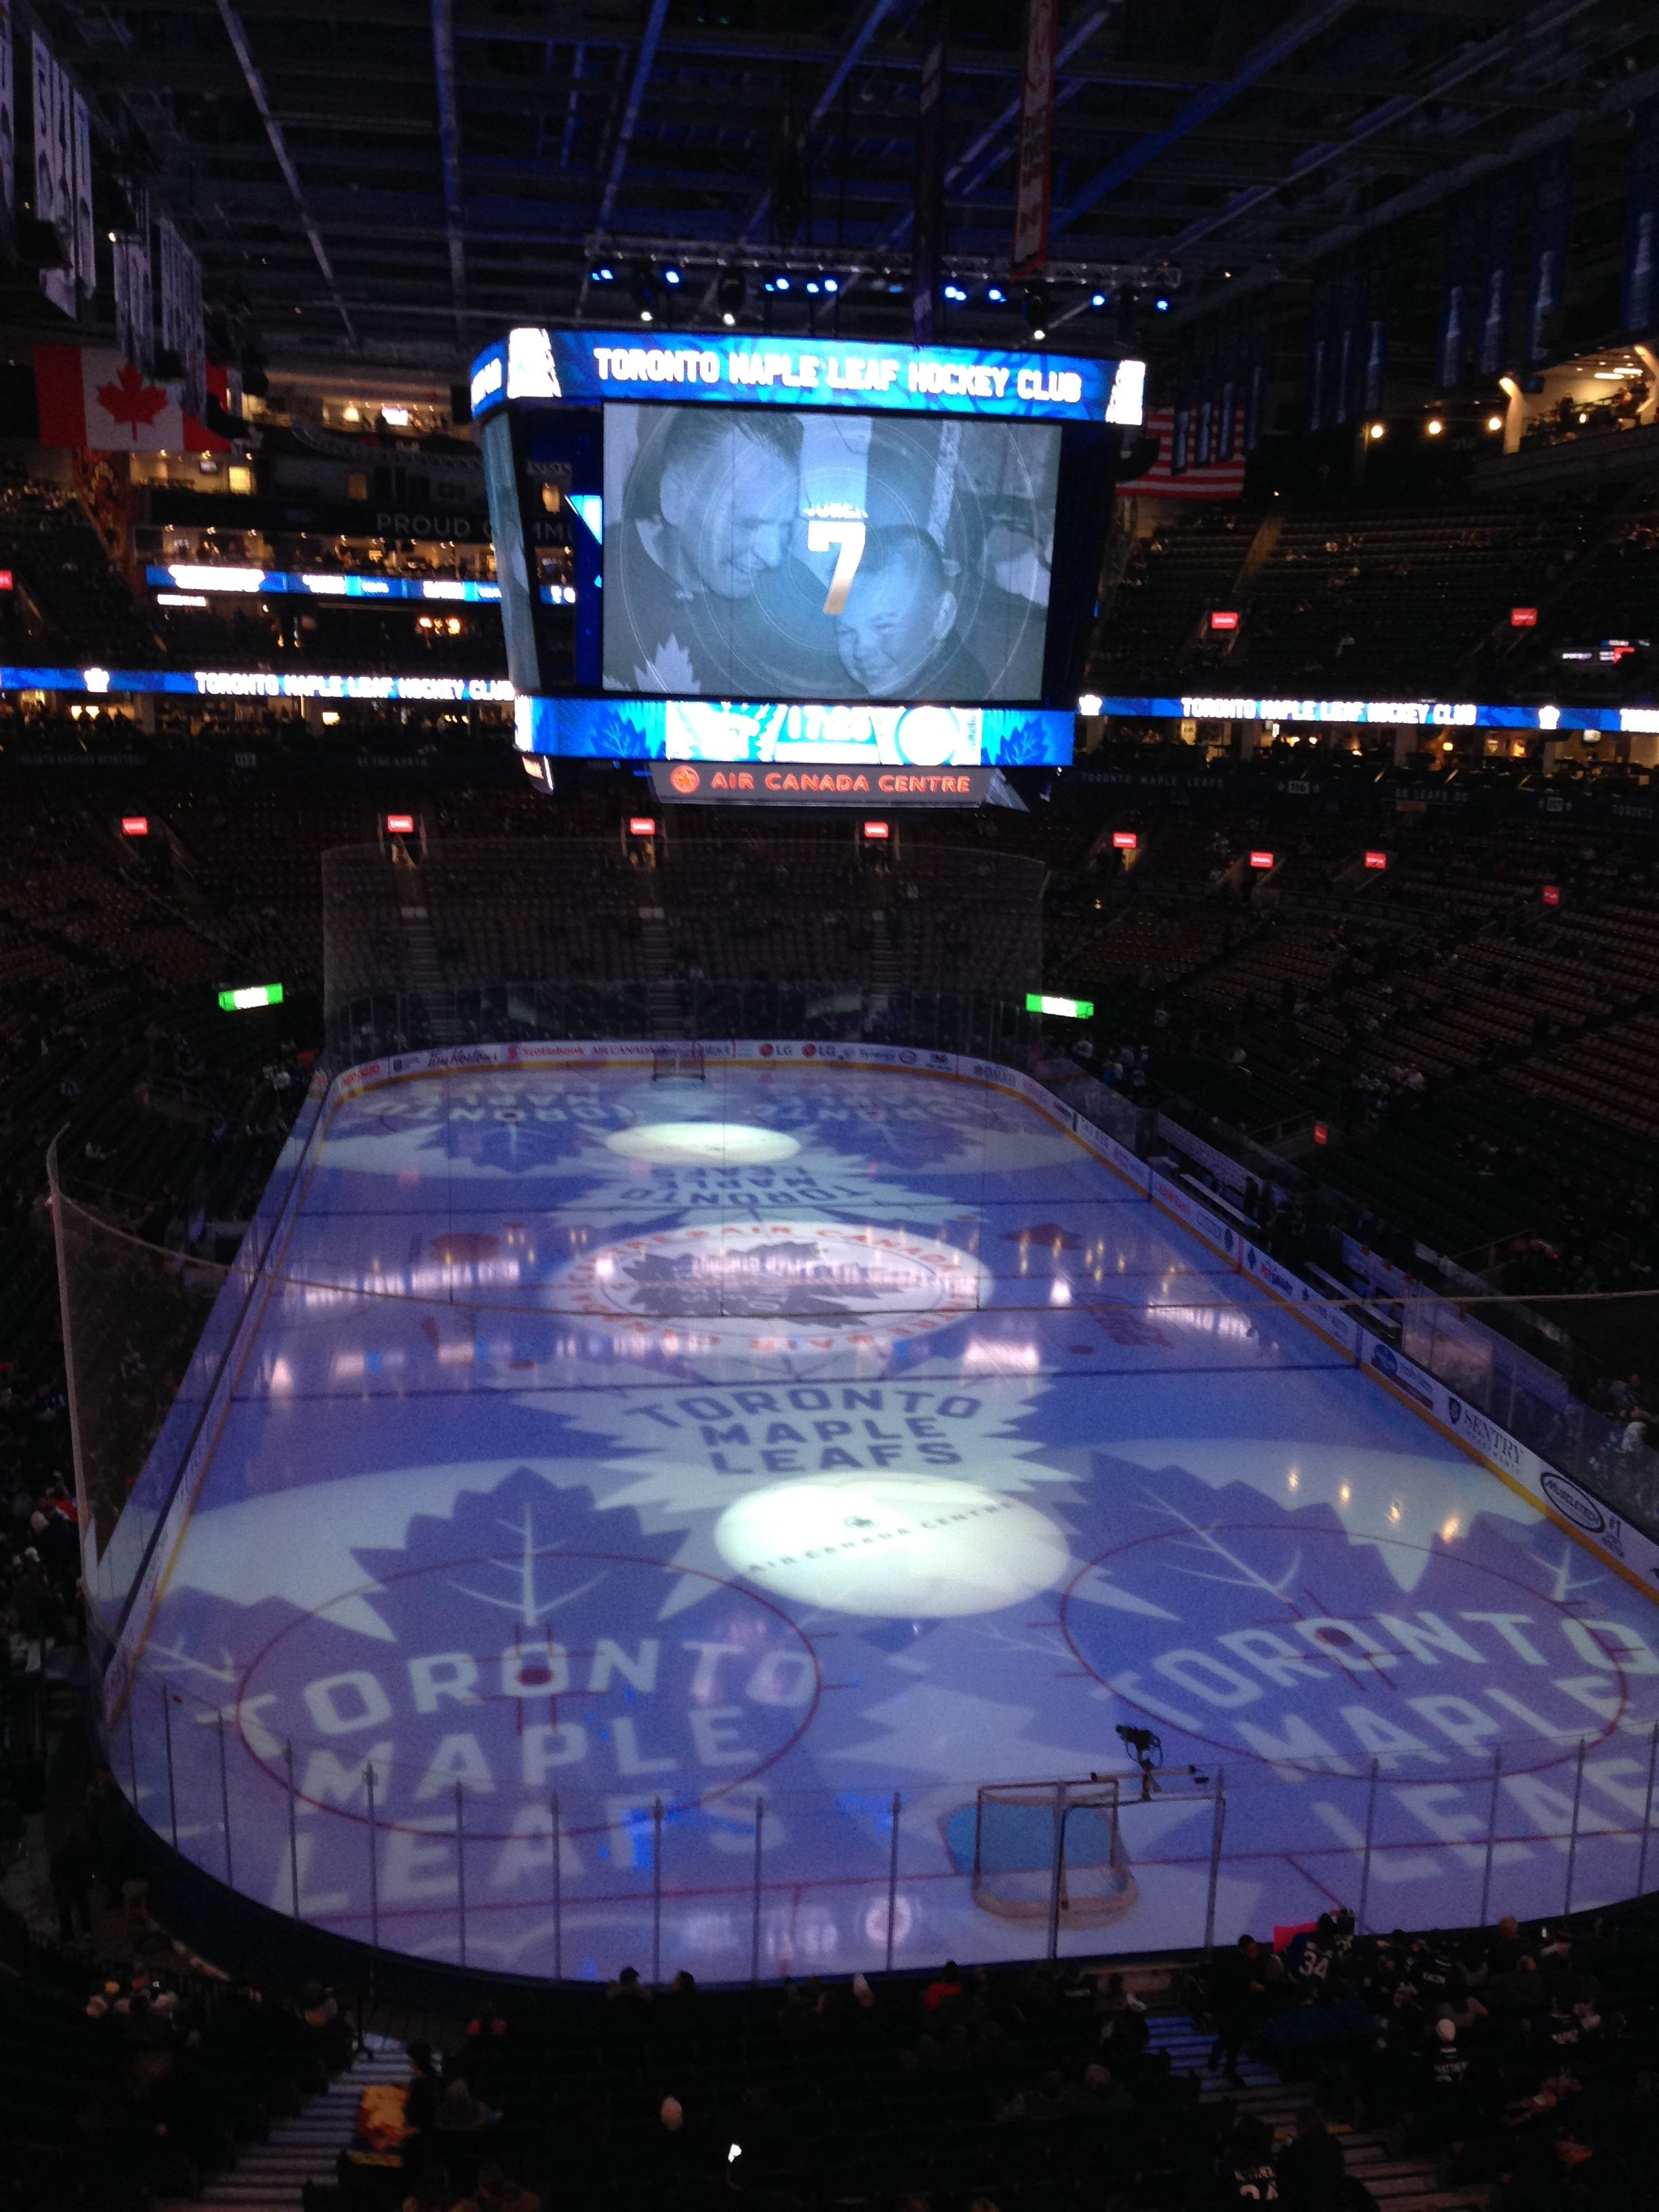 Scotiabank Arena Section 304 Row 1 Seat 3, 4